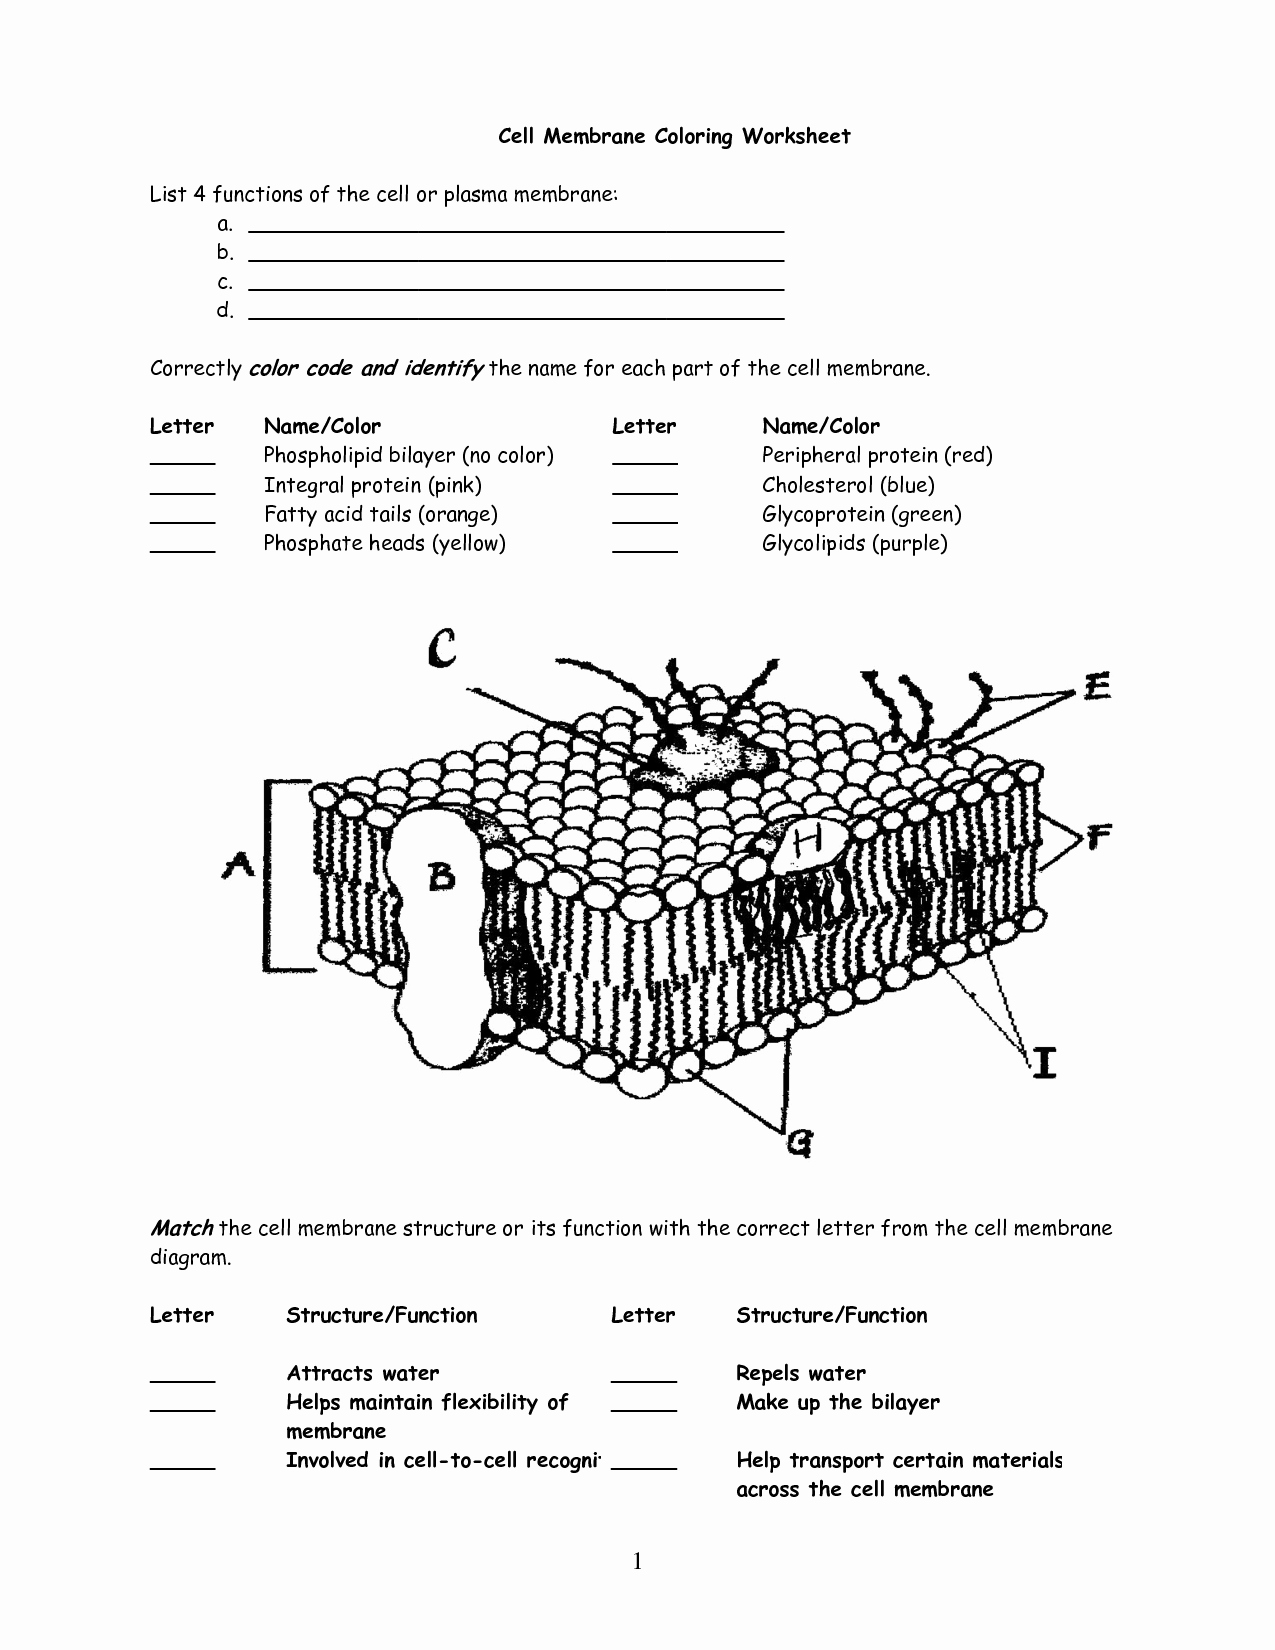 Cell Membrane Images Worksheet Answers Luxury 10 Best Of Cell Membrane Diagram Worksheet Cell